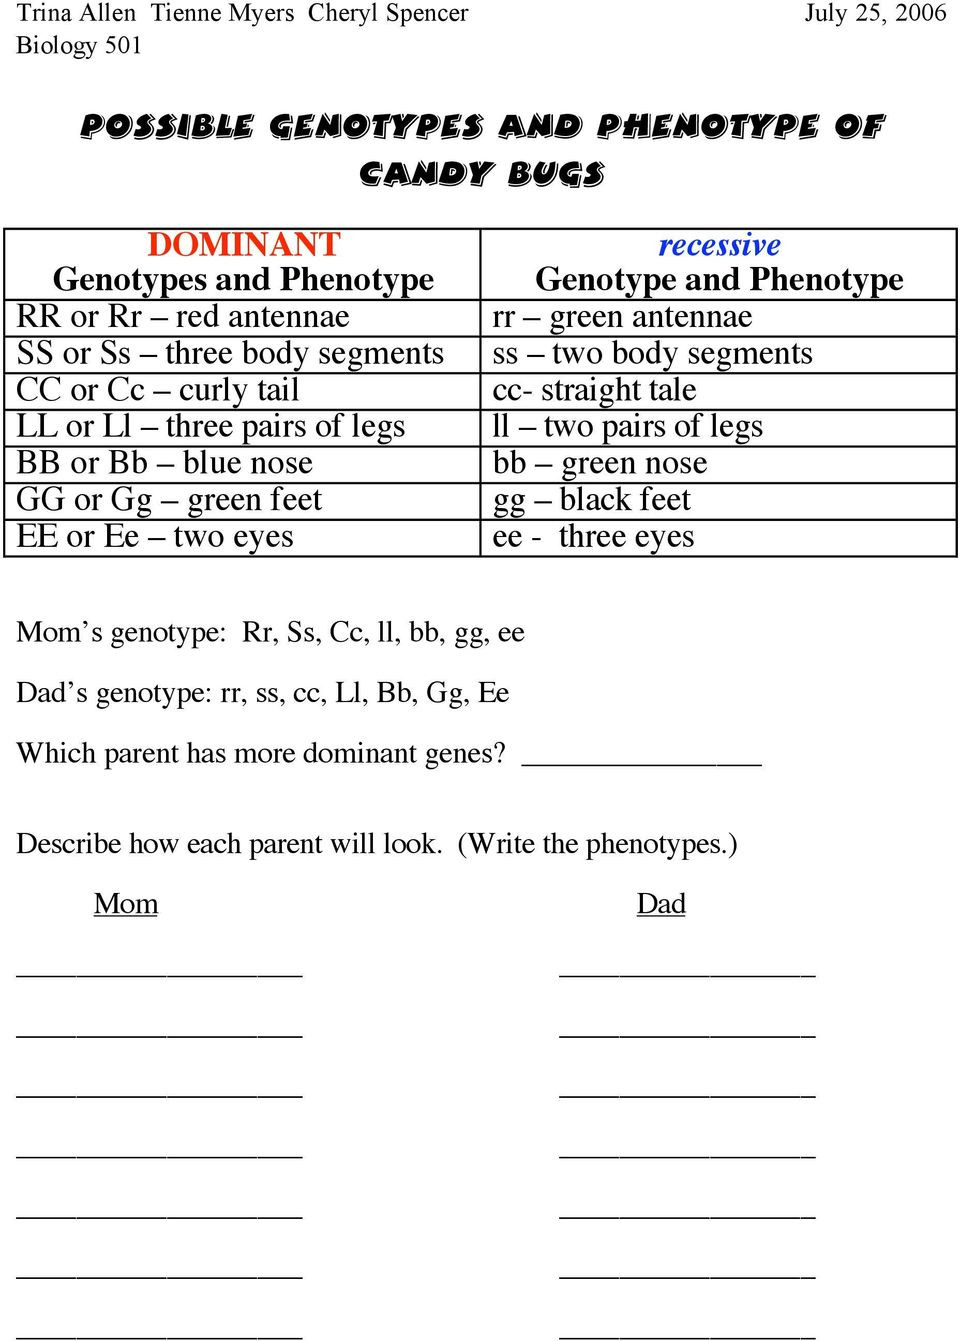 Genotypes and Phenotypes Worksheet Answers Lesson Plan Genotype and Phenotype Pdf Free Download